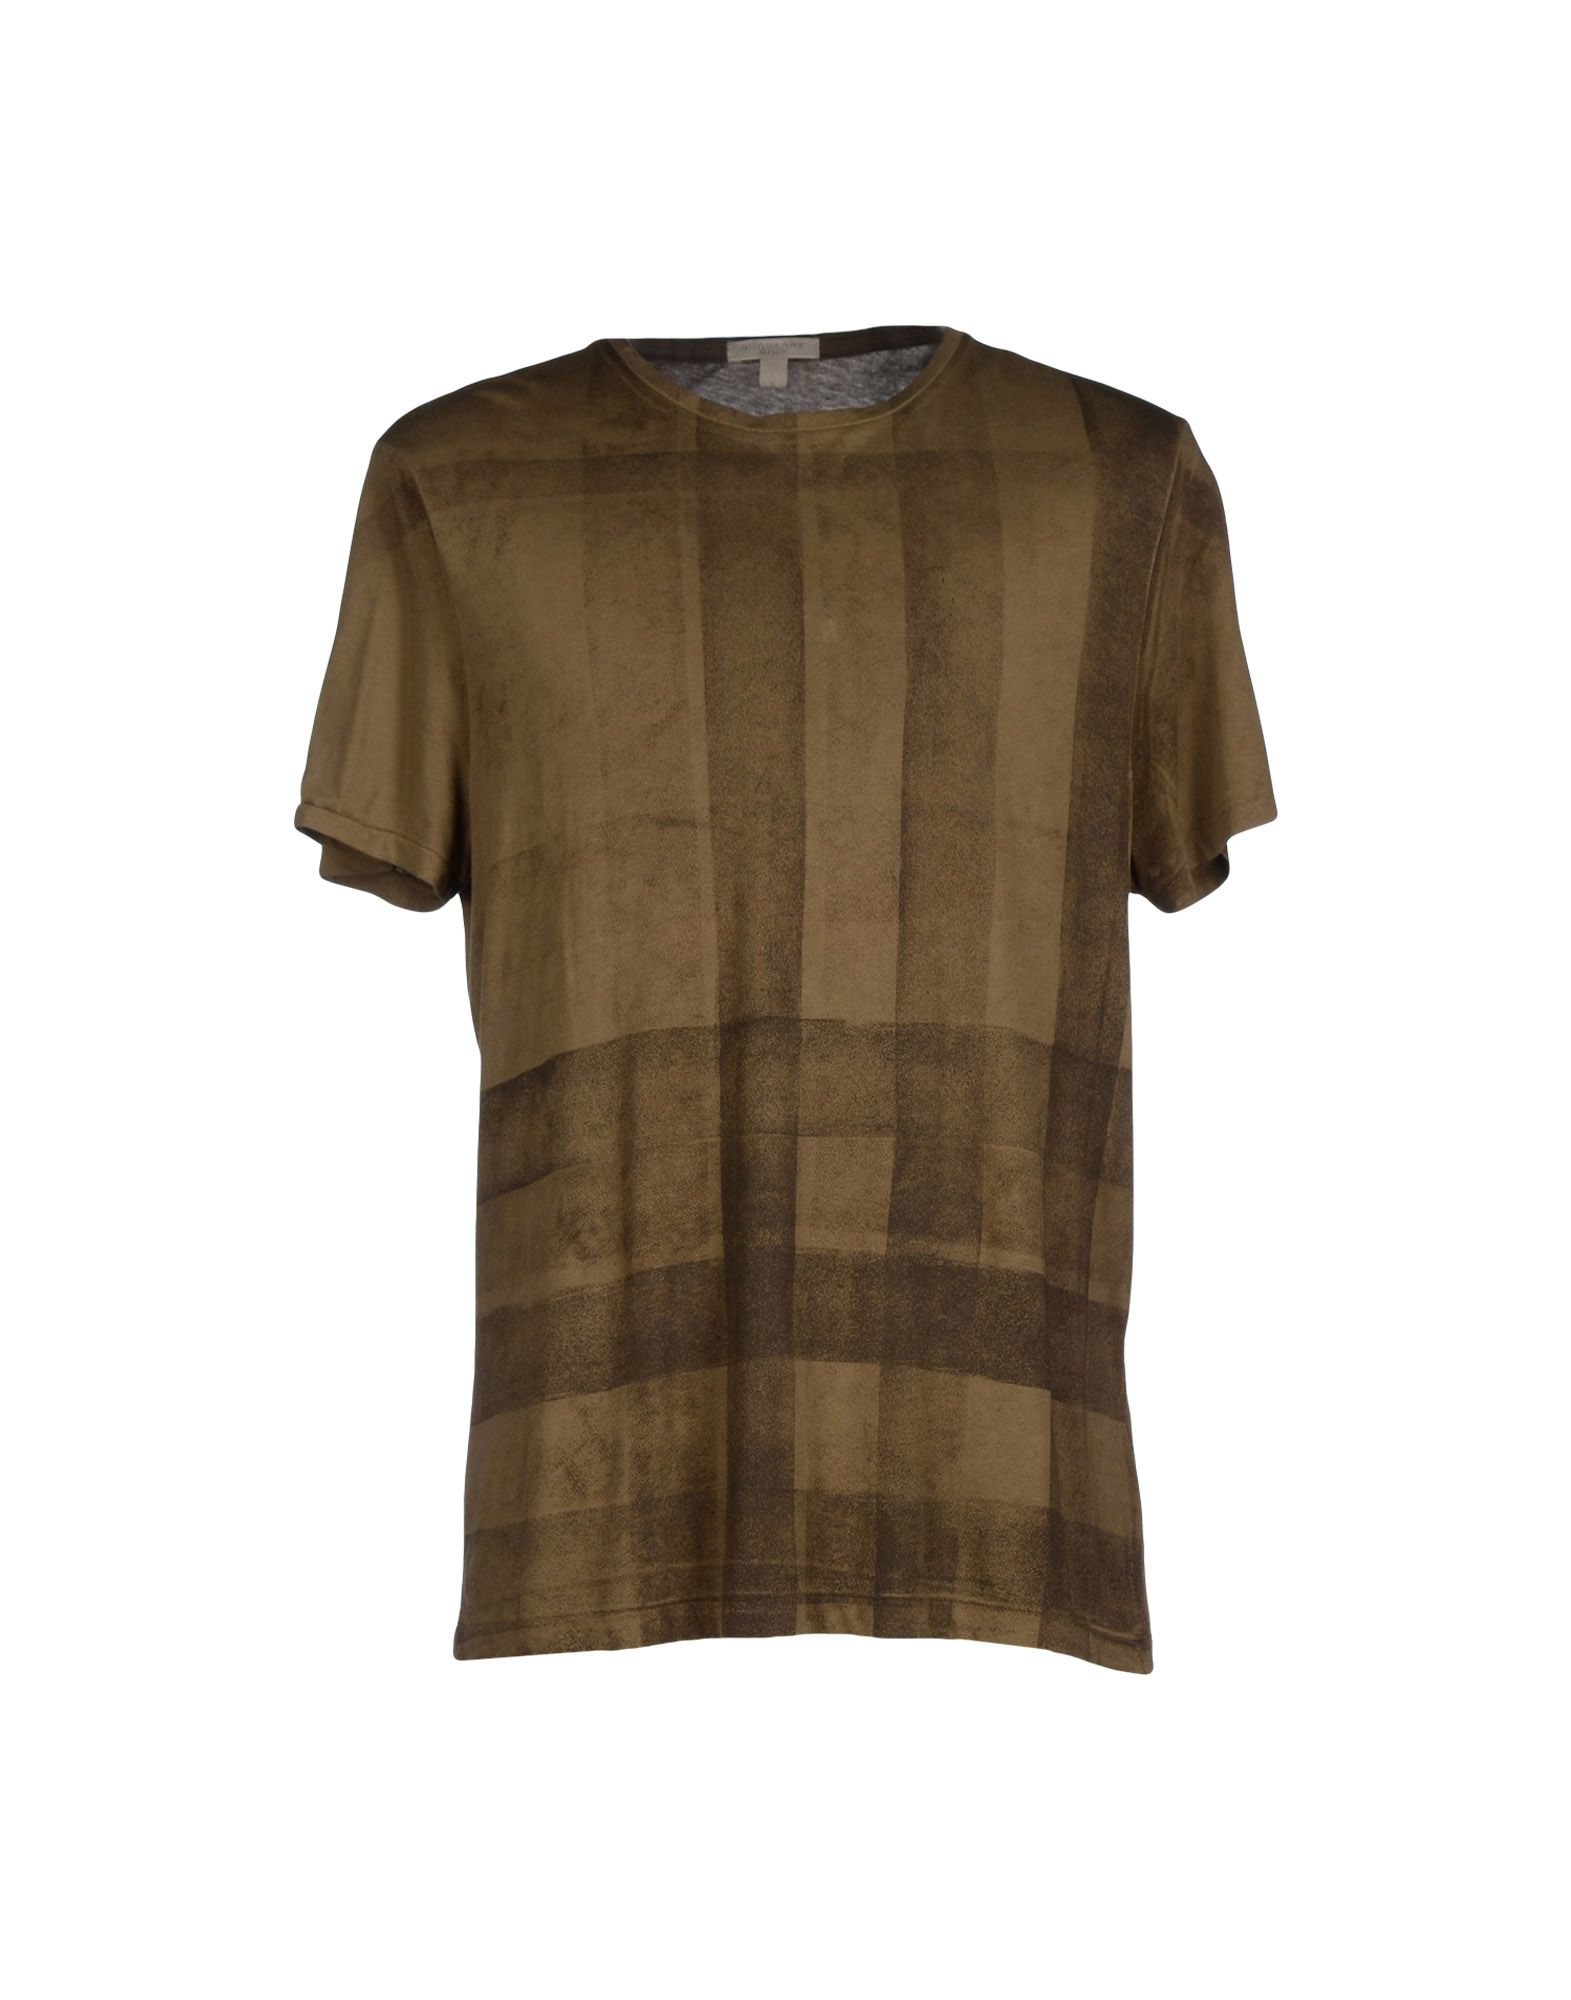 lyst burberry brit t shirt in green for men. Black Bedroom Furniture Sets. Home Design Ideas